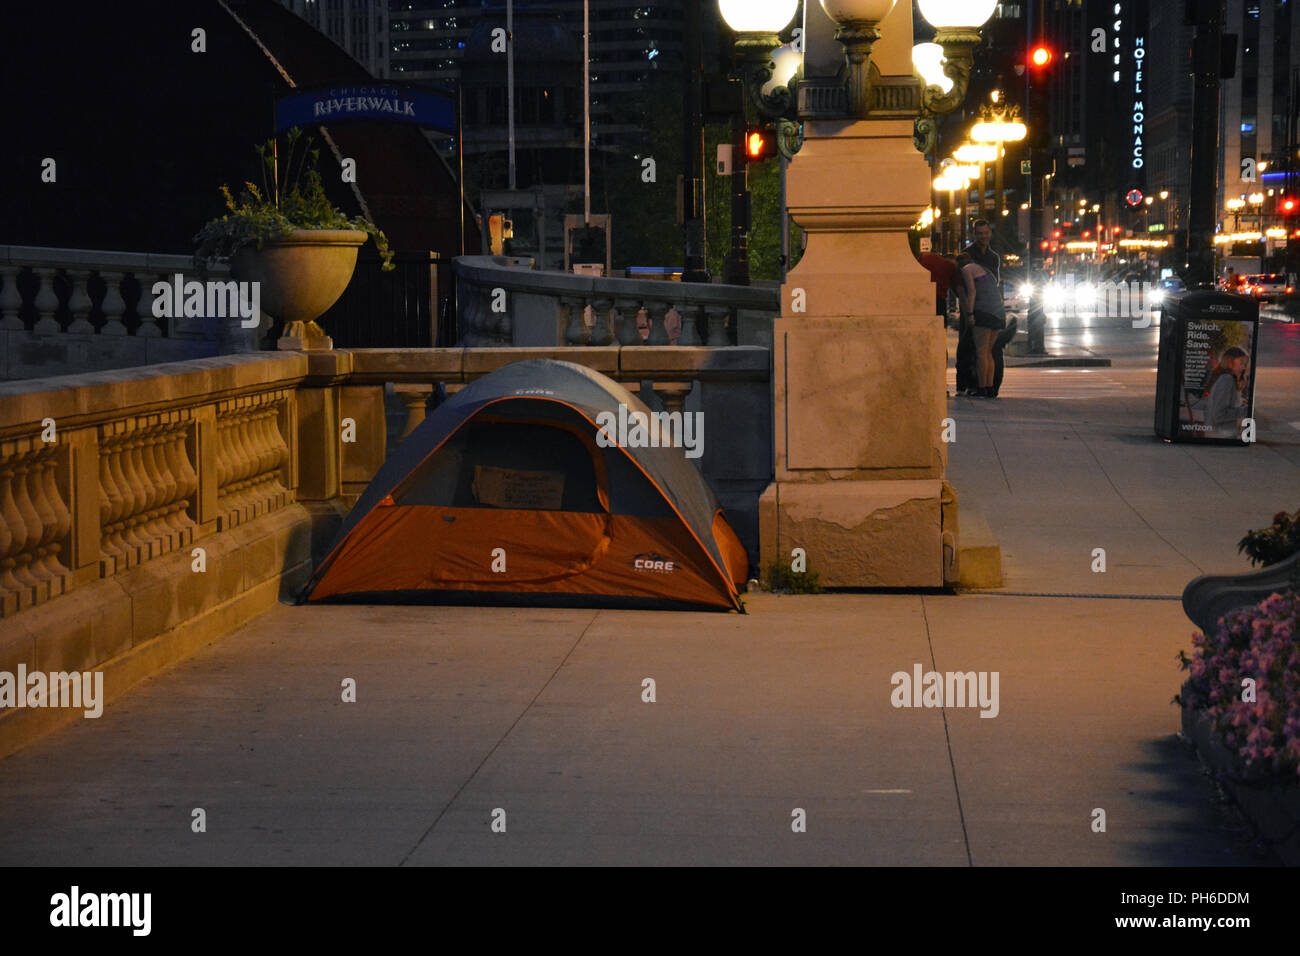 An overnight homeless tent off the Riverwalk in a corner of Upper Wacker Drive in Chicago. - Stock Image